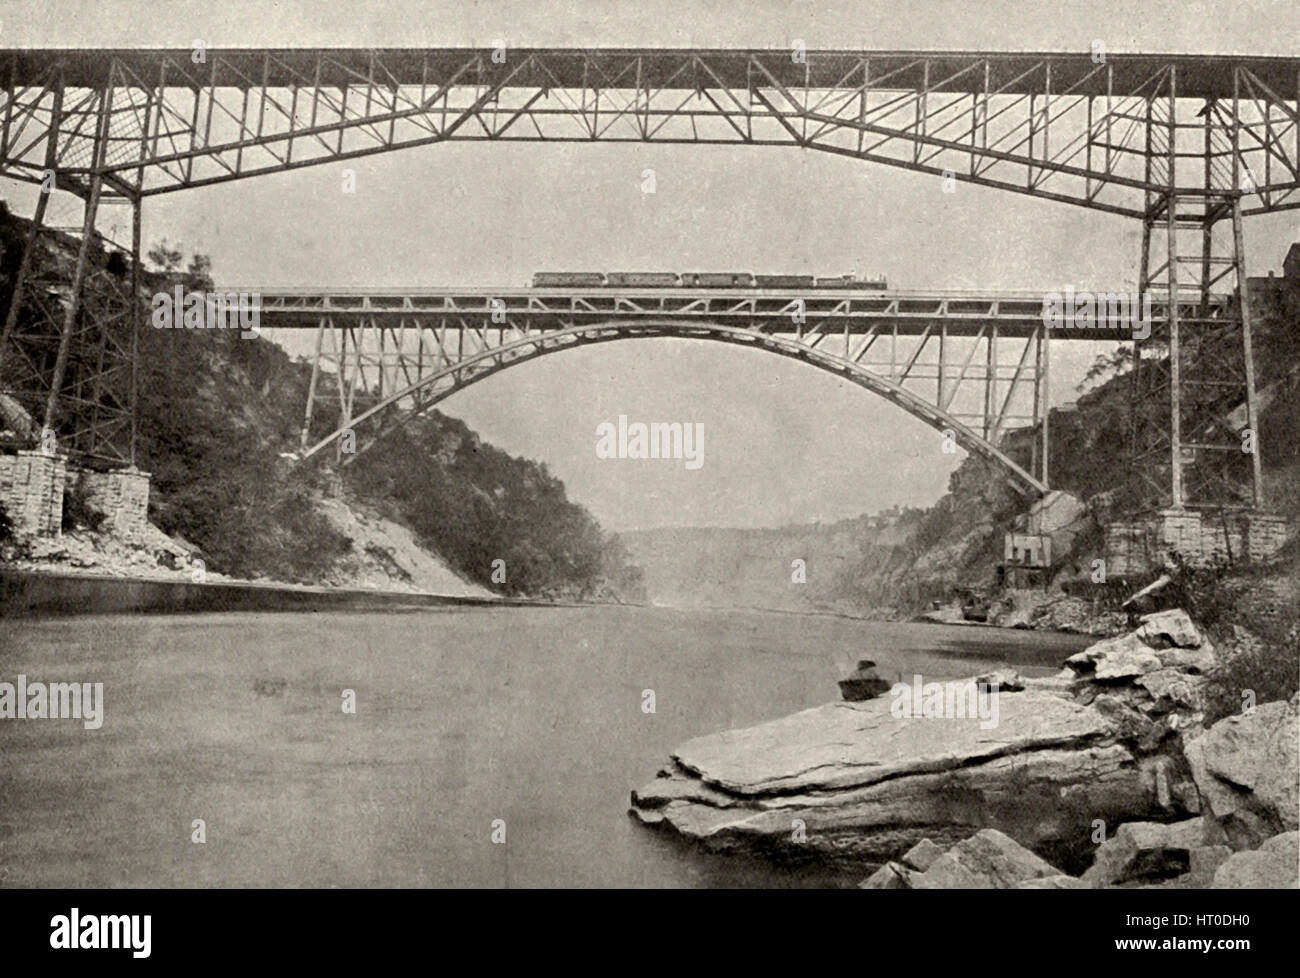 View of completed Railway Arch Bridge, Cantilever Bridge in foreground, Niagara Falls, circa 1900 - Stock Image